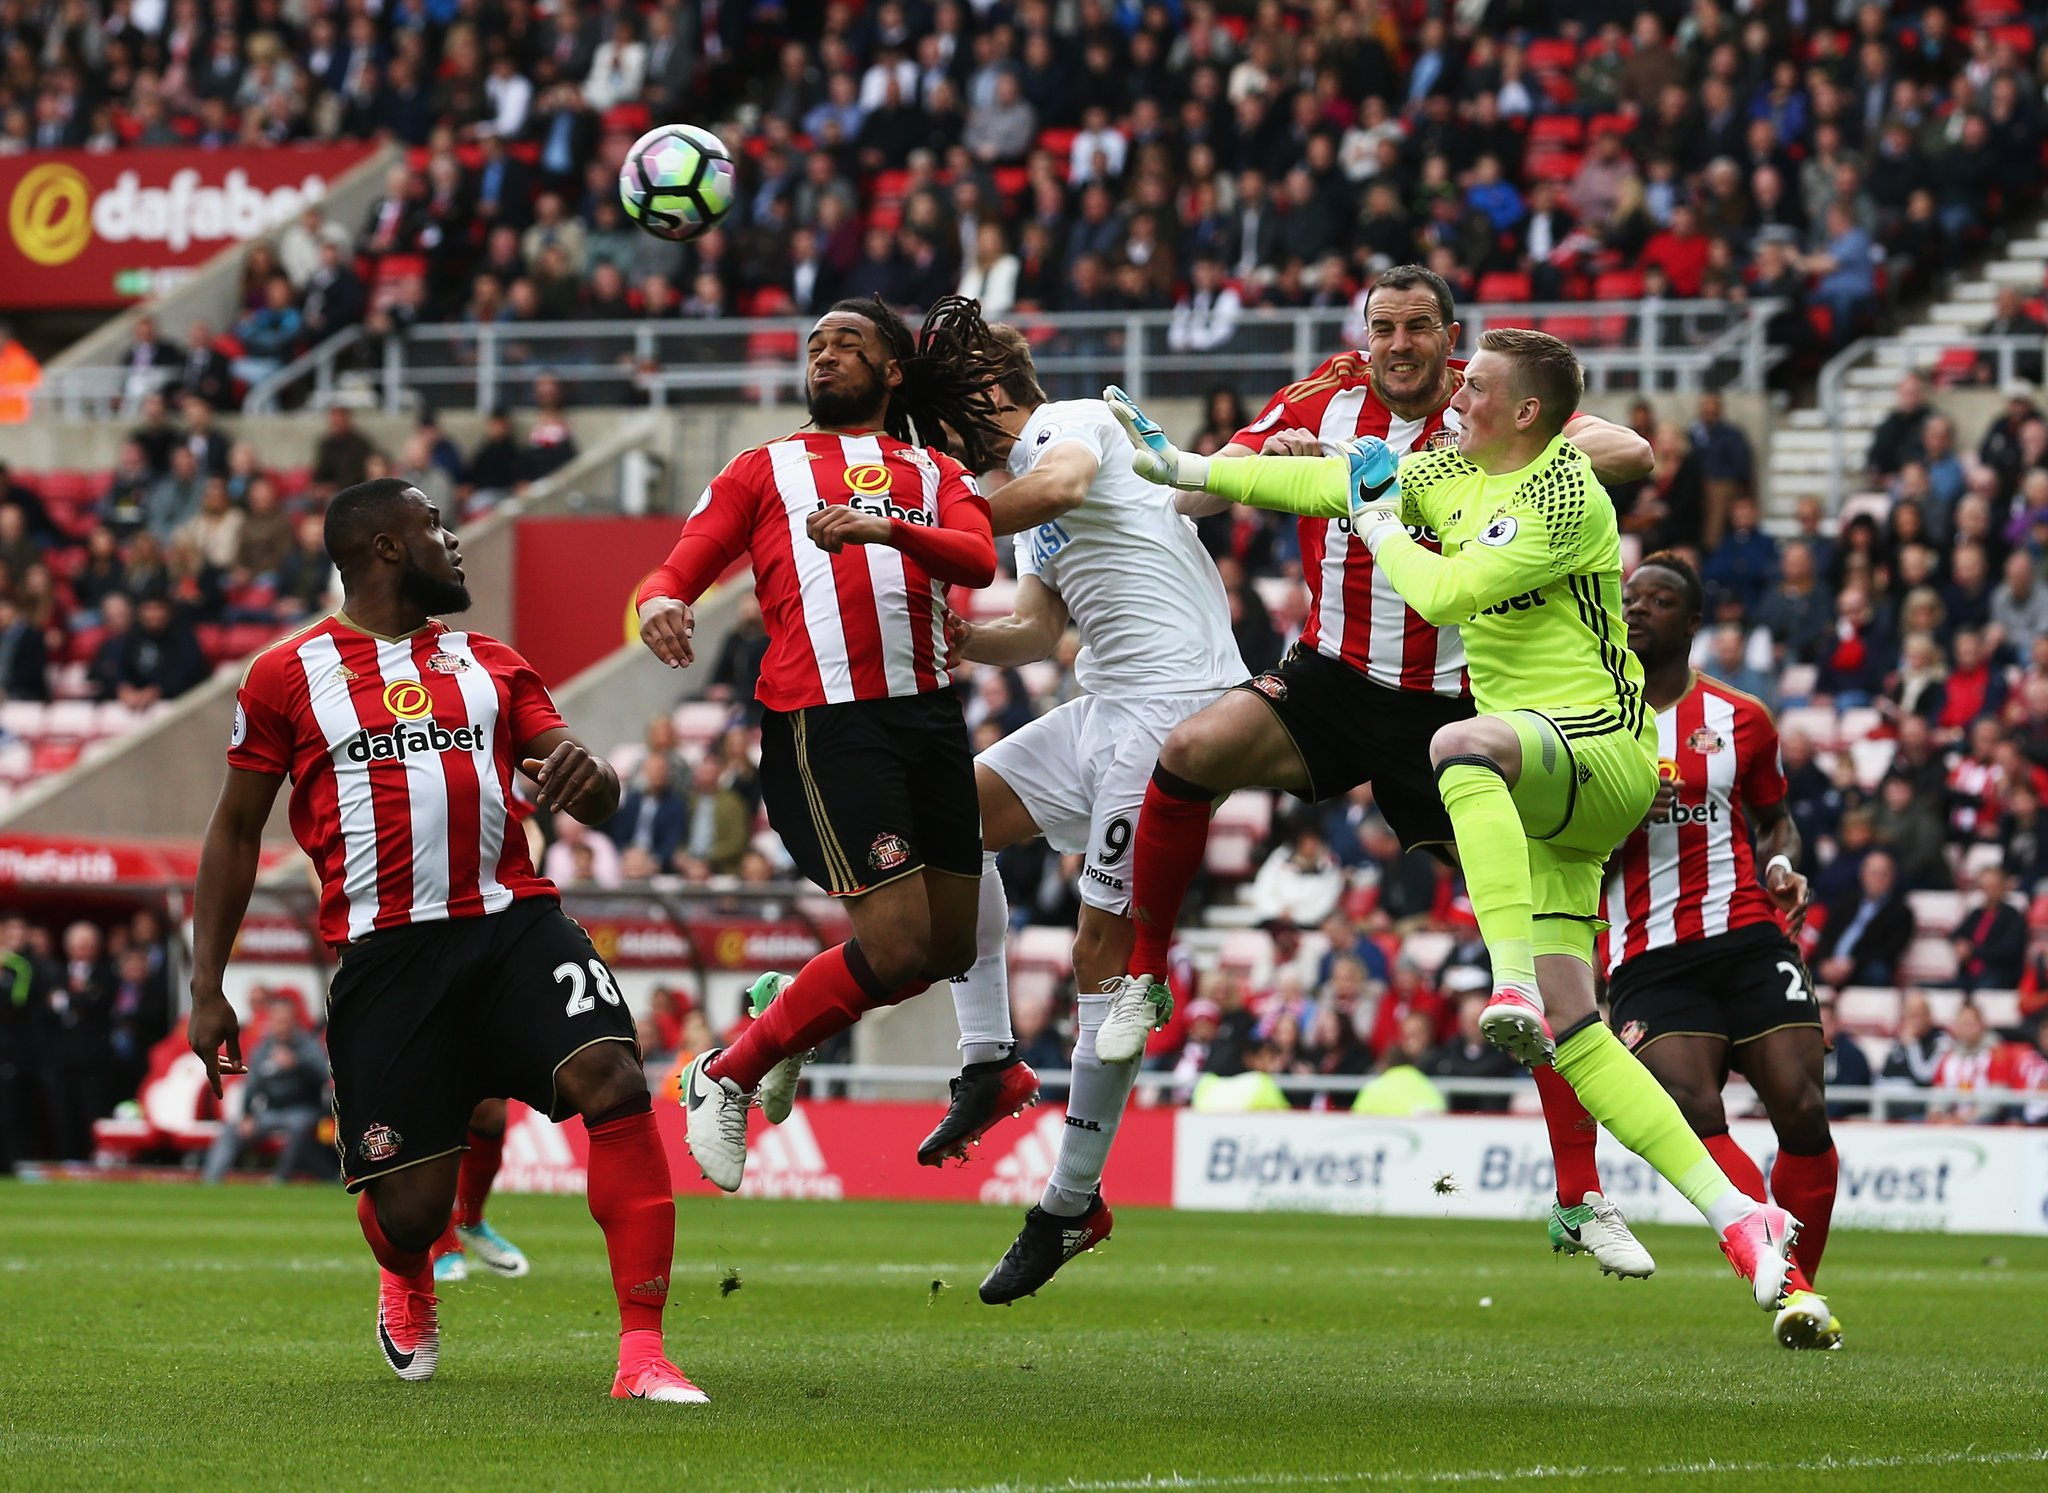 Anichebe Goes Off Injured As Sunderland Fall To Swansea